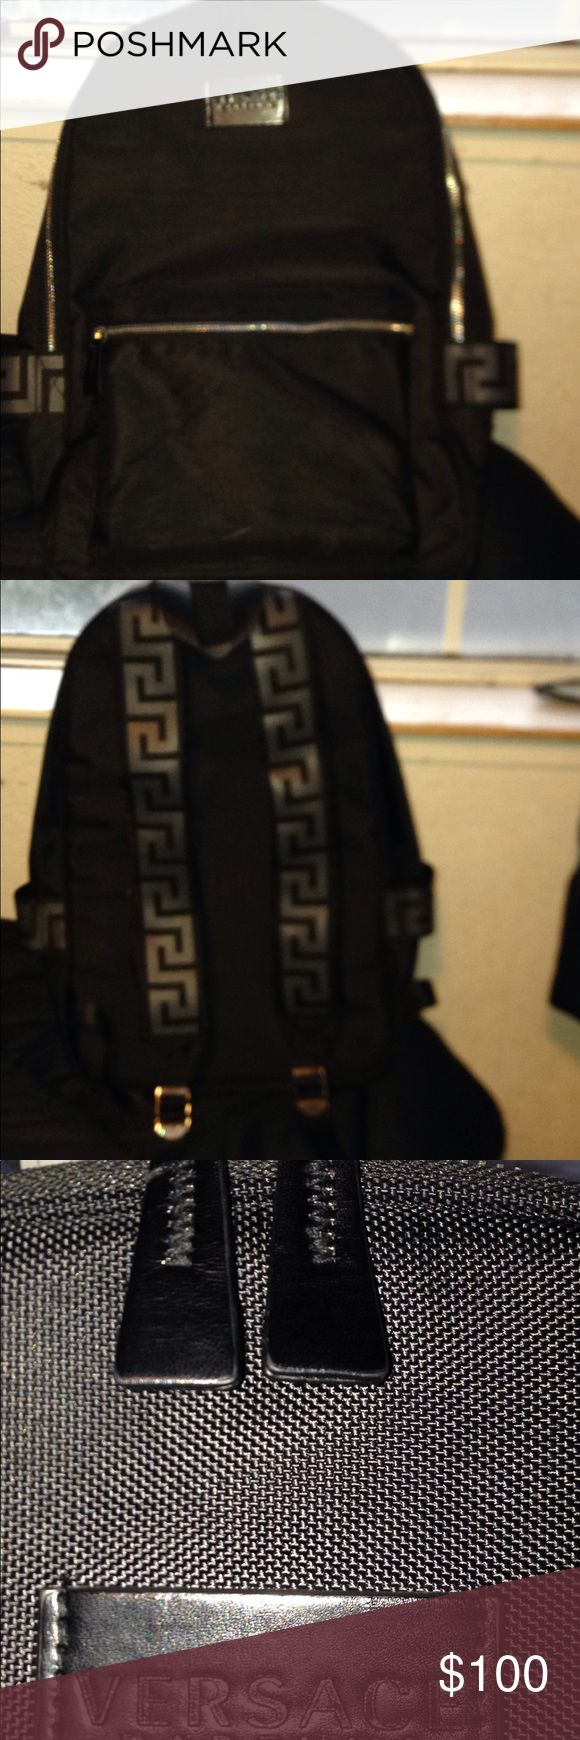 Versace Backpack In good condition I bought it from Versace store online Versace Bags Backpacks